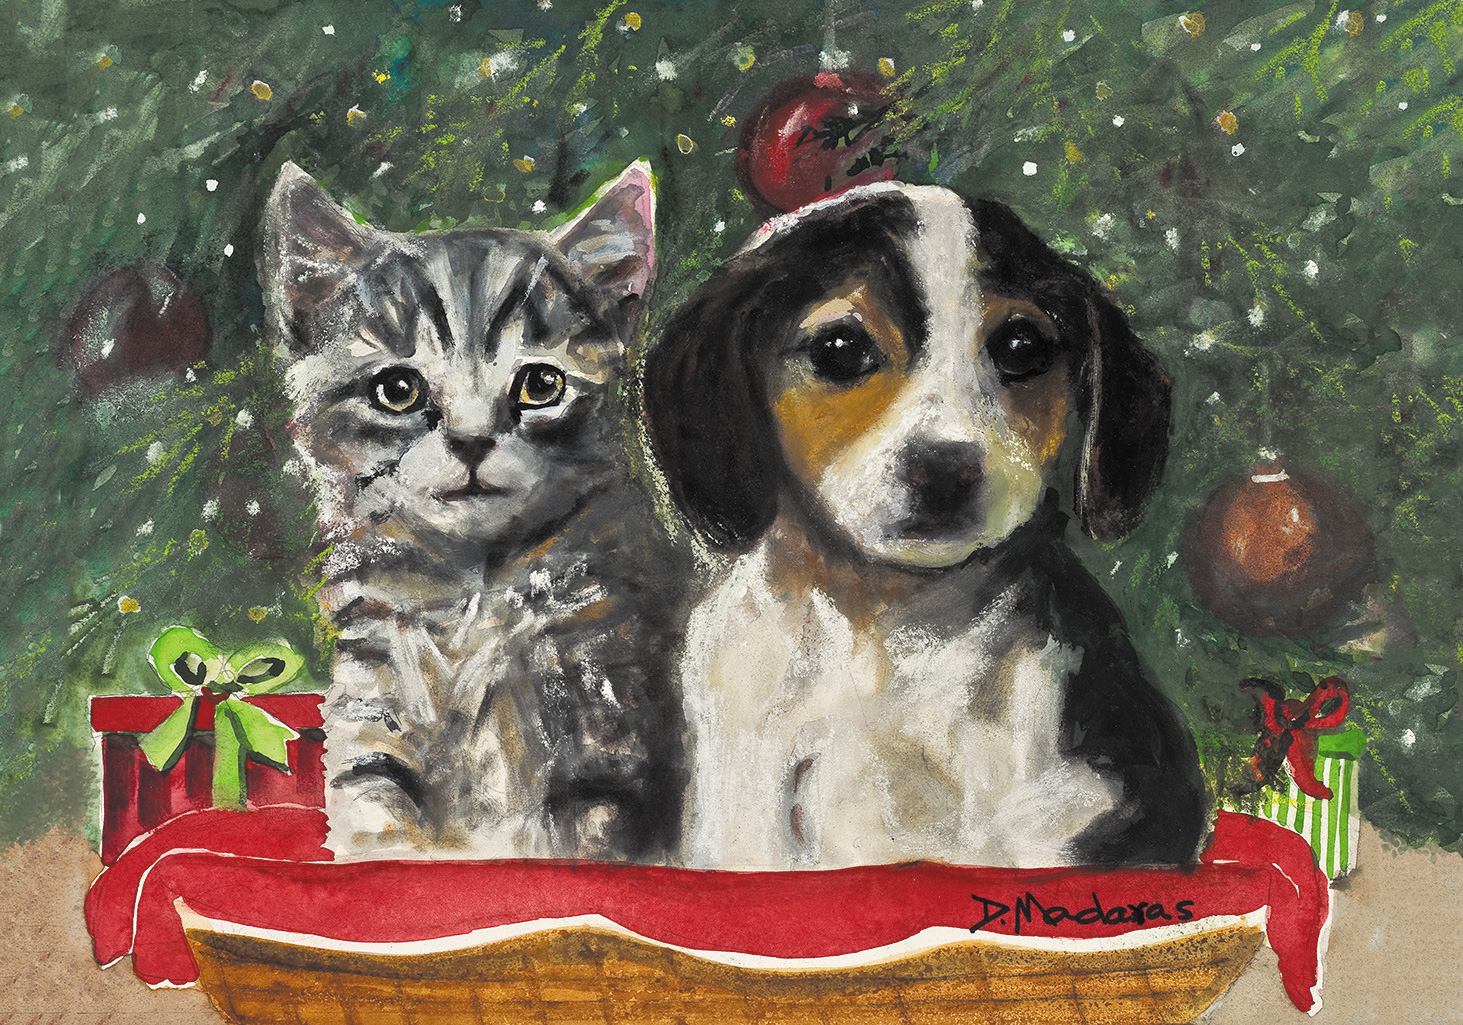 """My Forever Home"" ornaments and holiday cards will benefit the Humane Society of Southern Arizona. Twenty-five southwest holiday cards are also available."